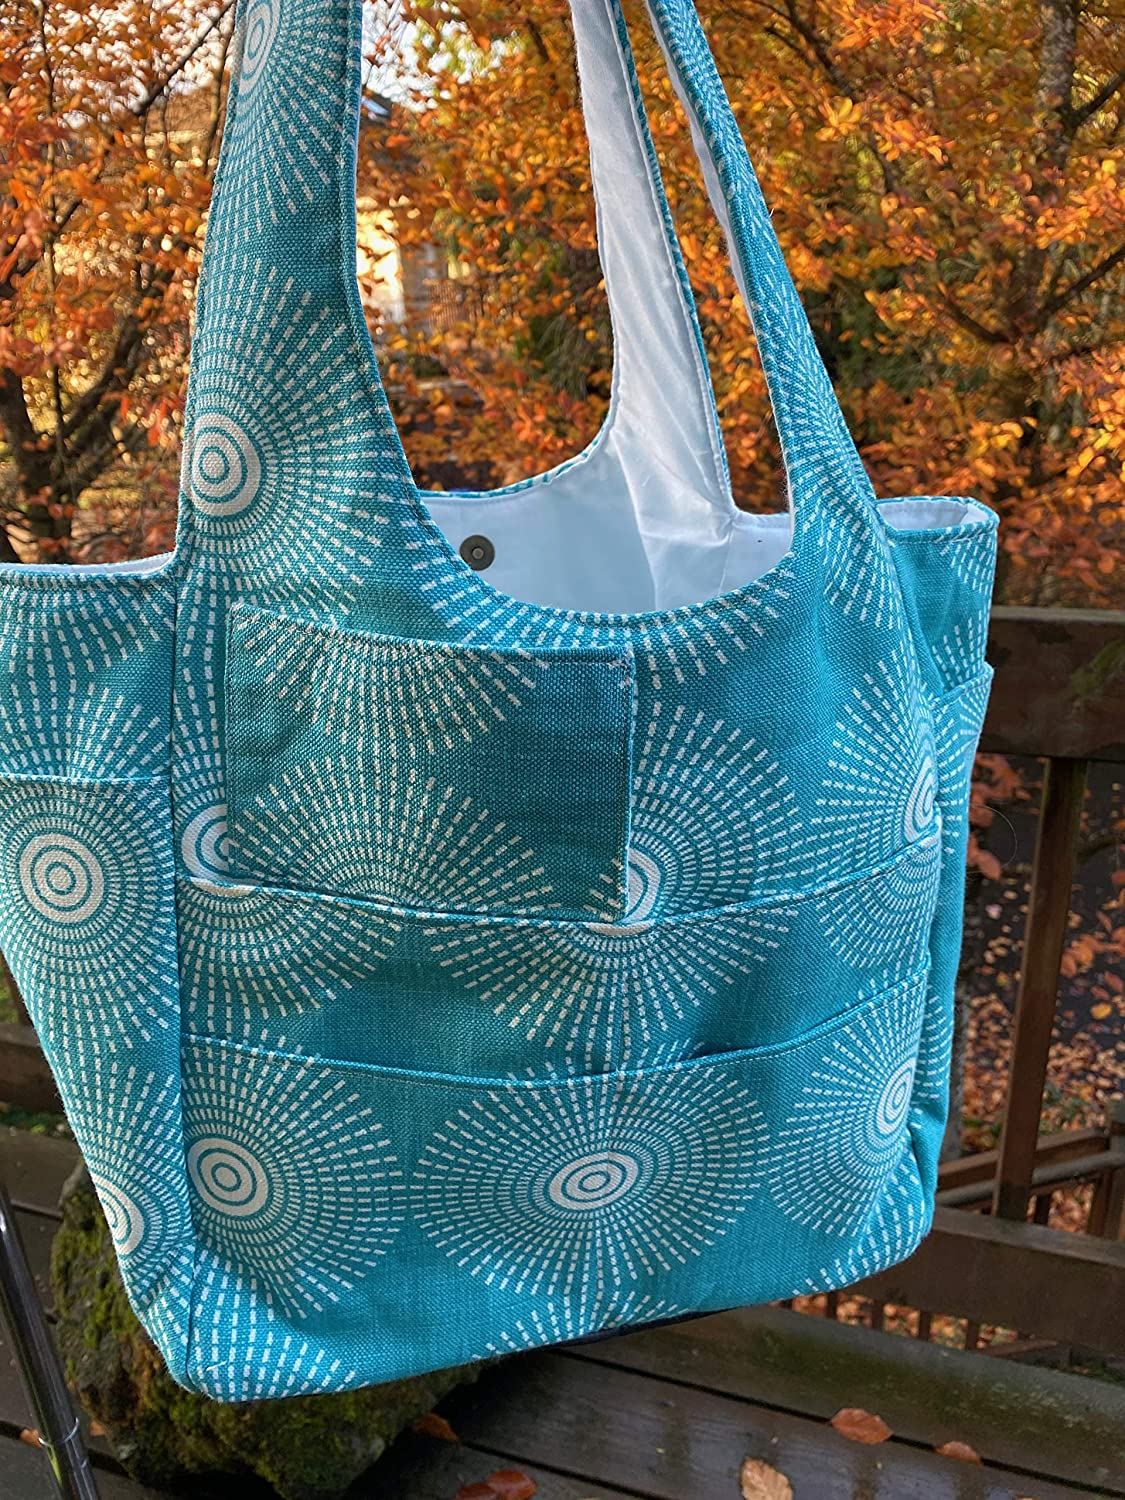 Knitted tote in turquoise